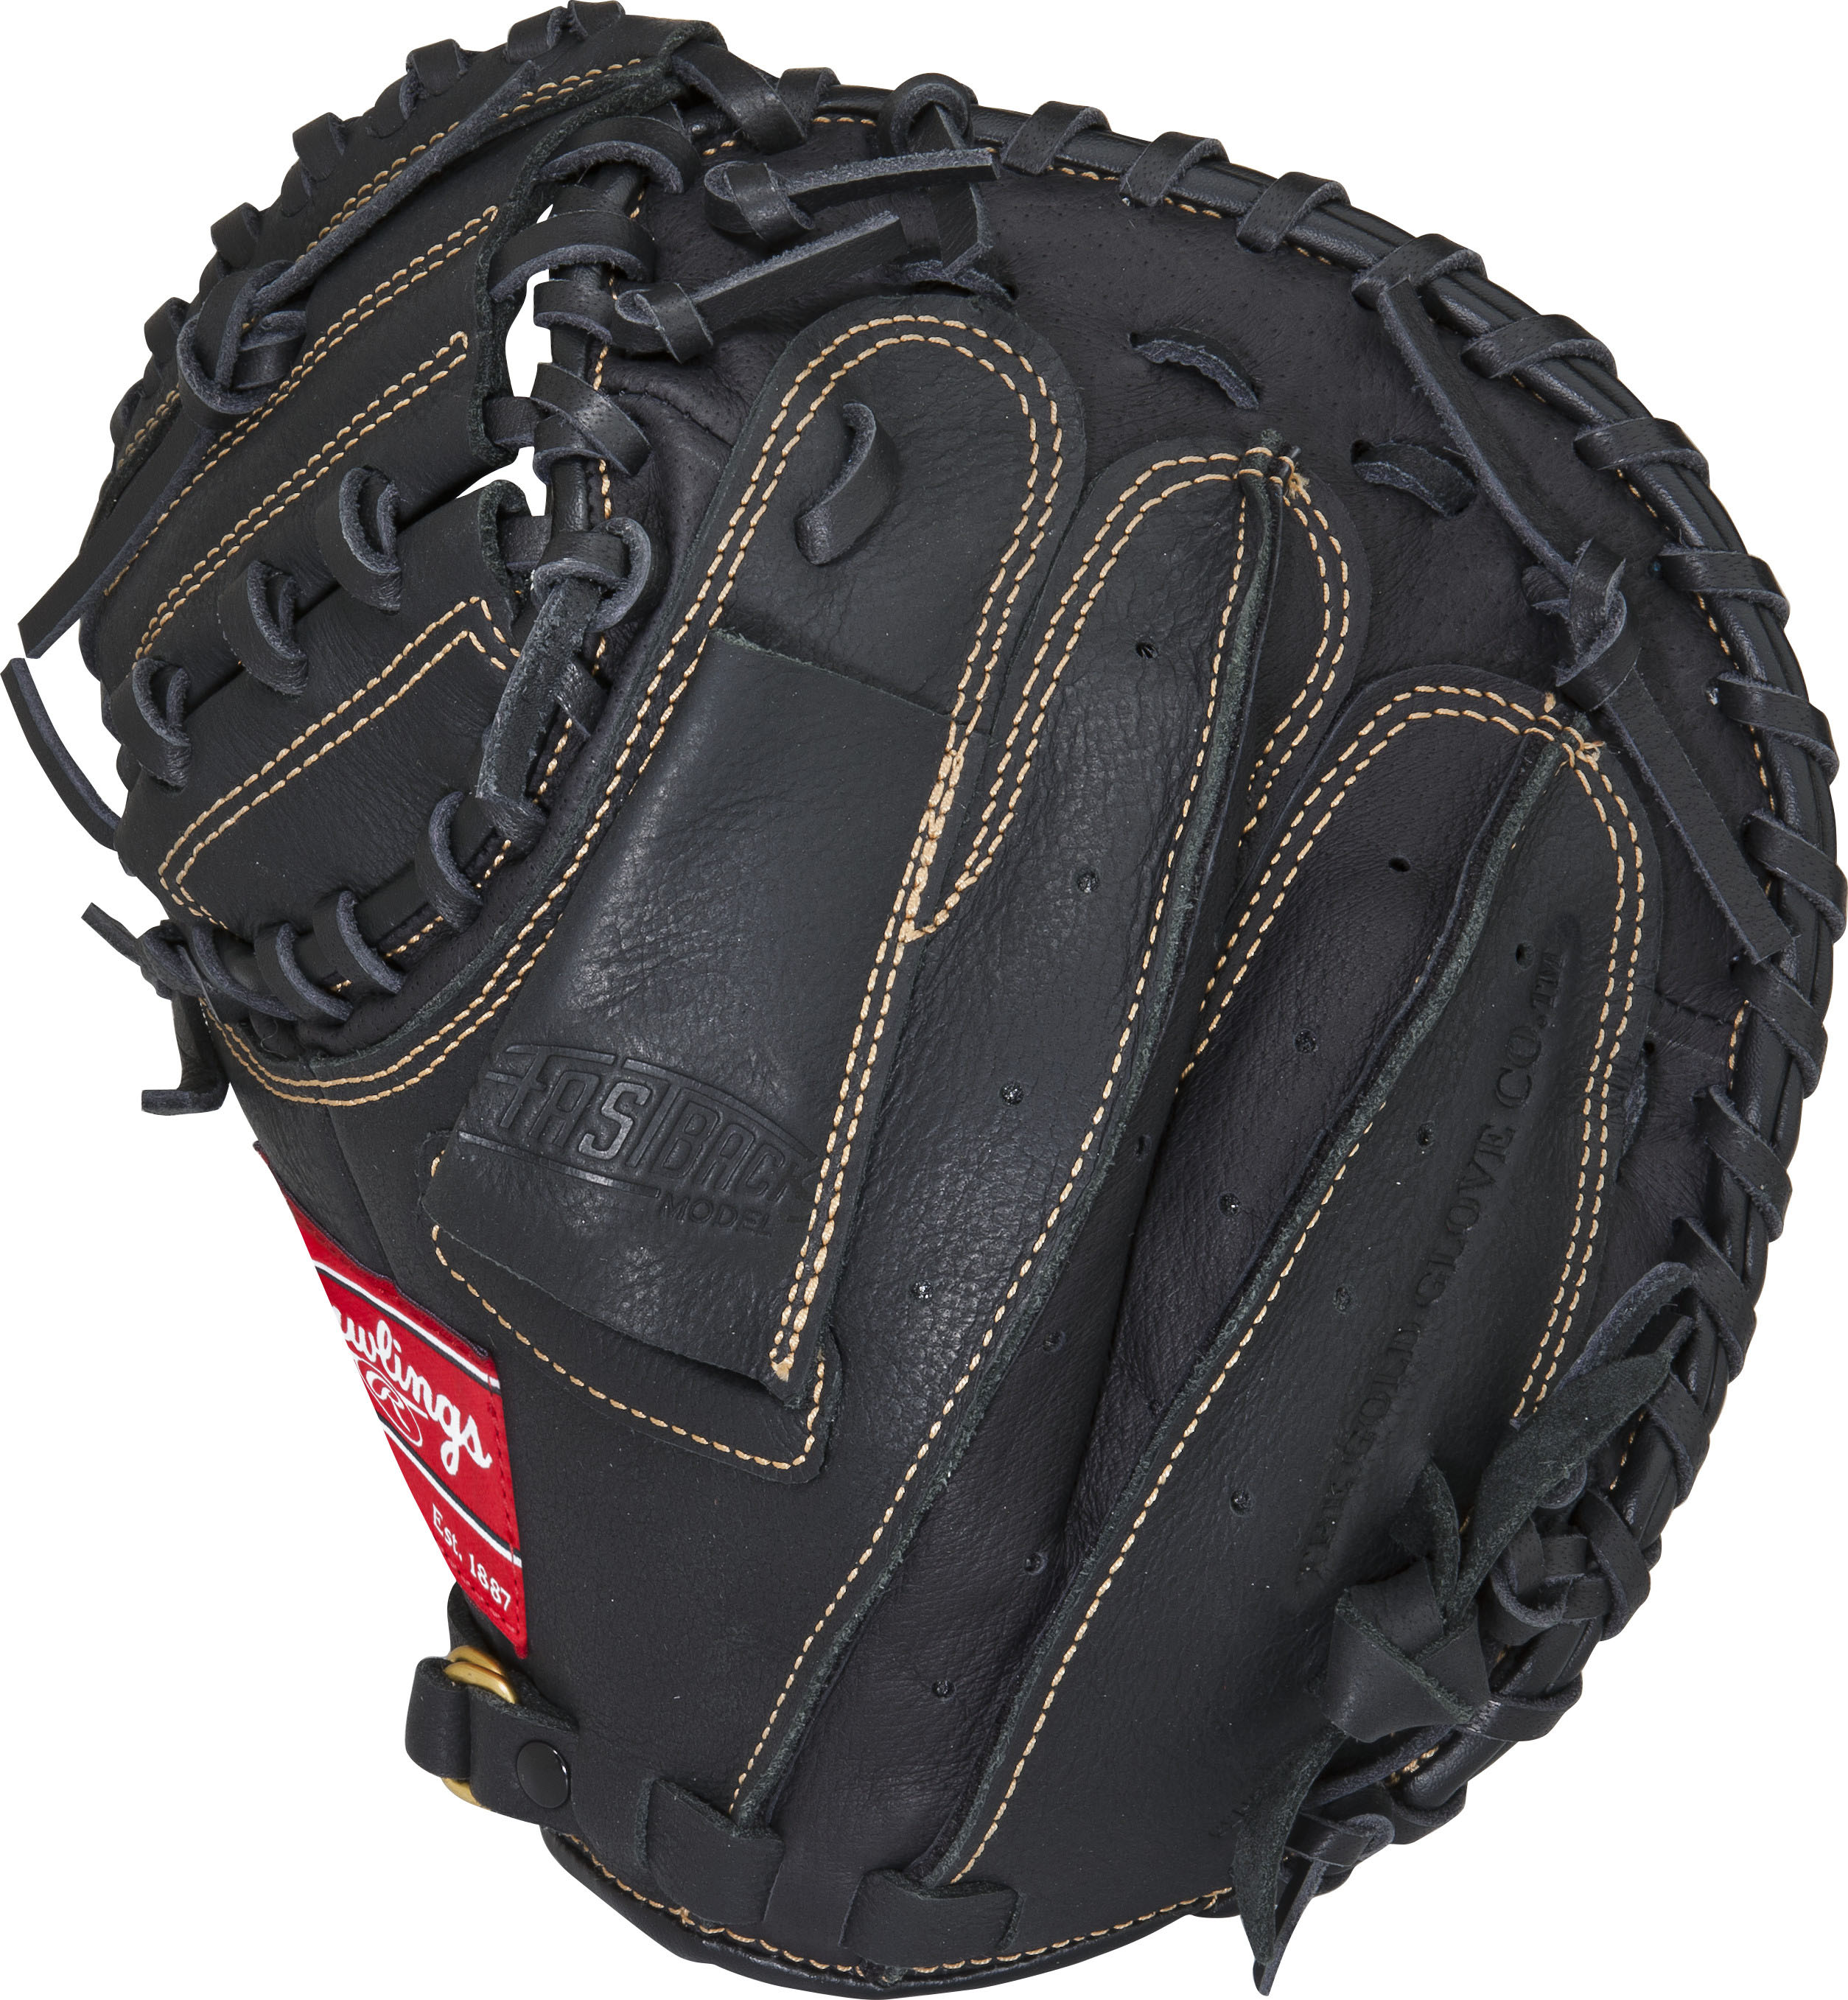 http://www.bestbatdeals.com/images/gloves/rawlings/RCM315BB_back.jpg